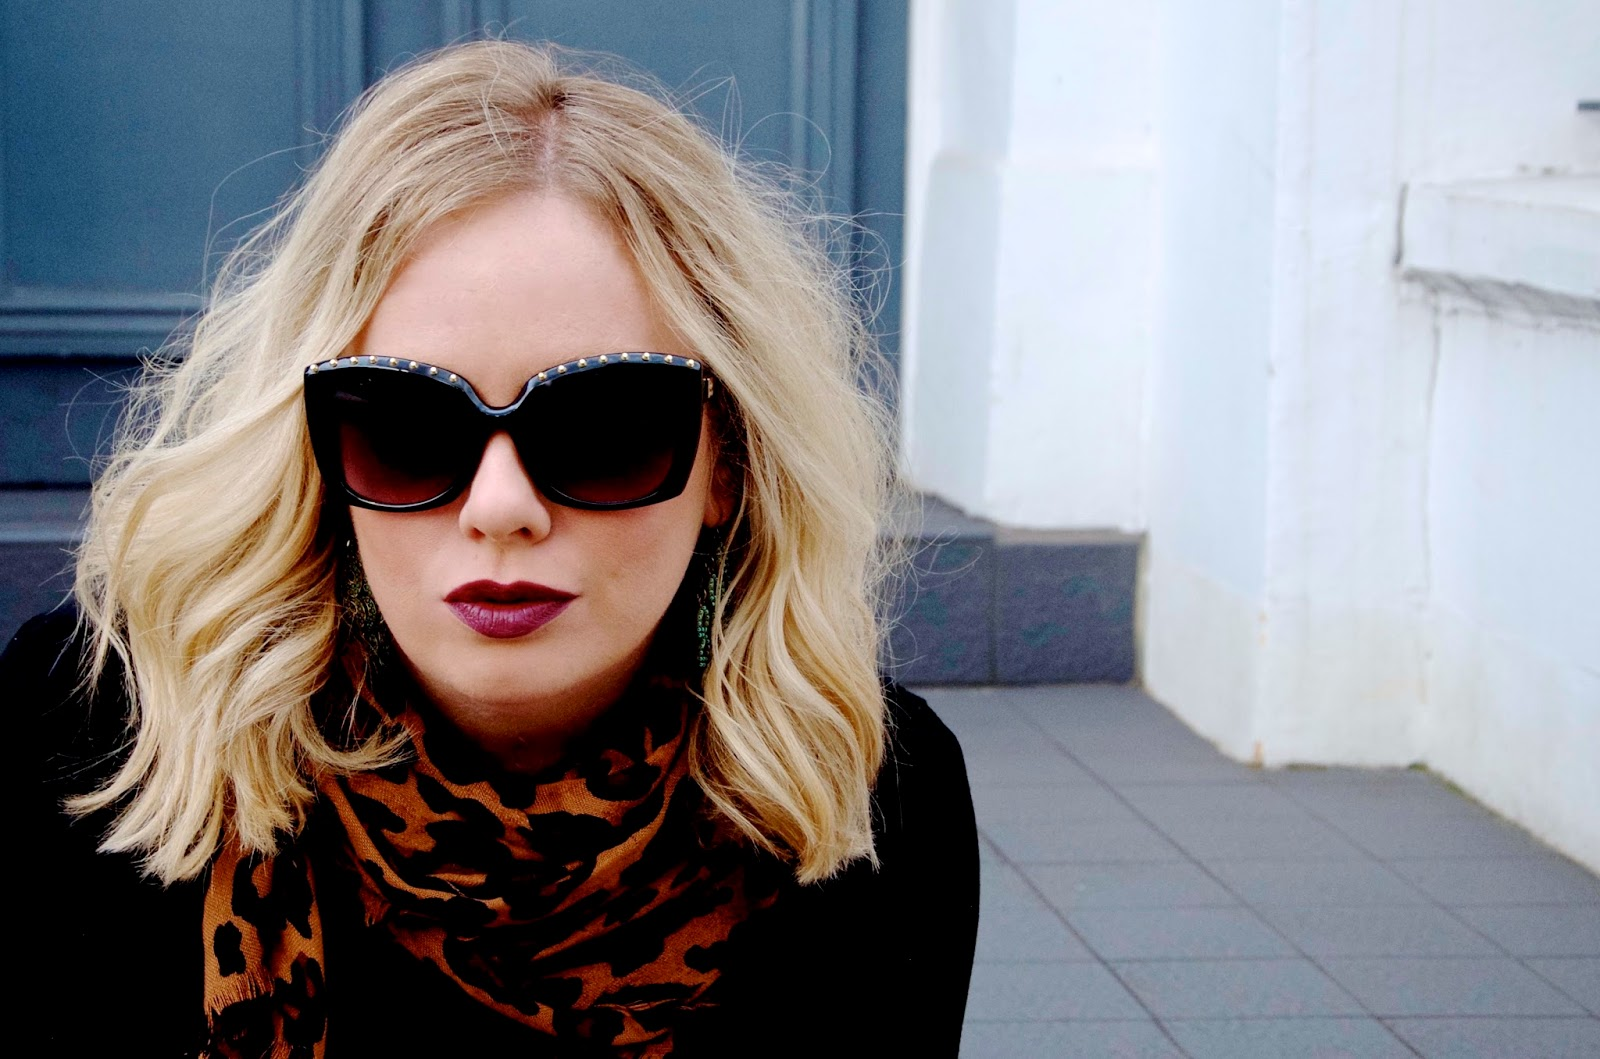 Leopard scarf, purple lipstick and studded sunglasses